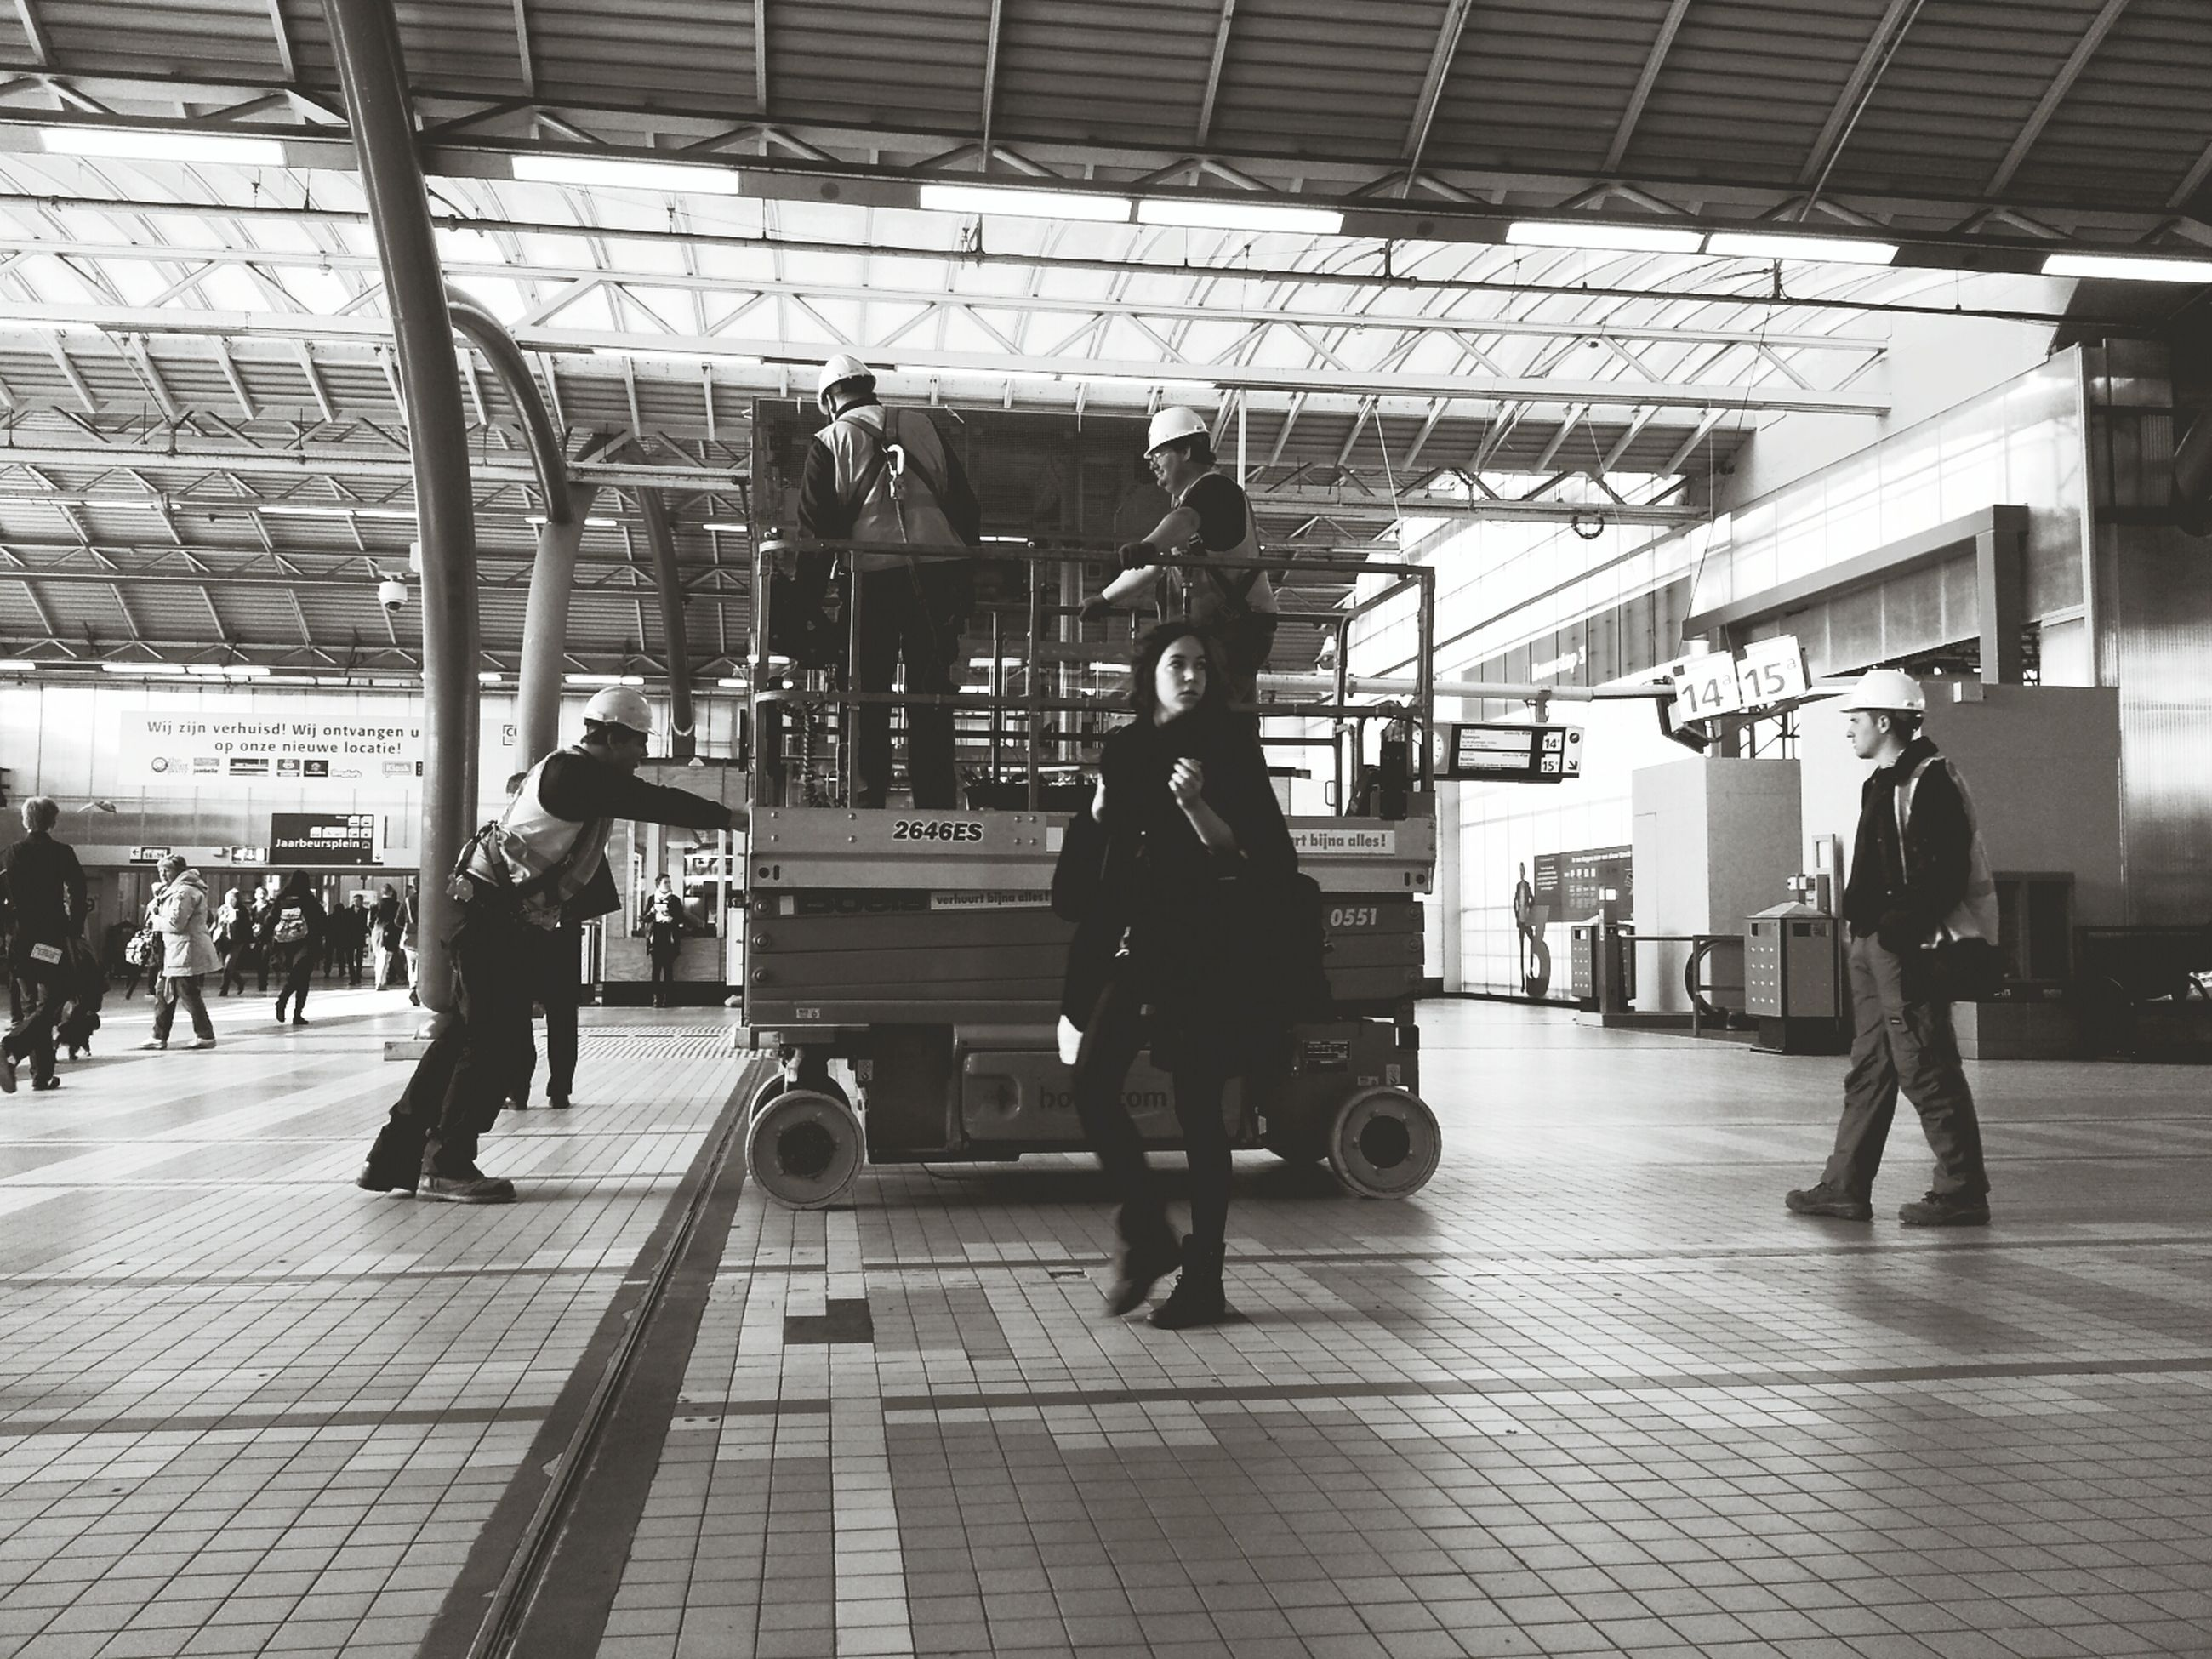 indoors, railroad station, lifestyles, public transportation, transportation, railroad station platform, full length, passenger, men, person, built structure, architecture, leisure activity, travel, city life, subway station, ceiling, walking